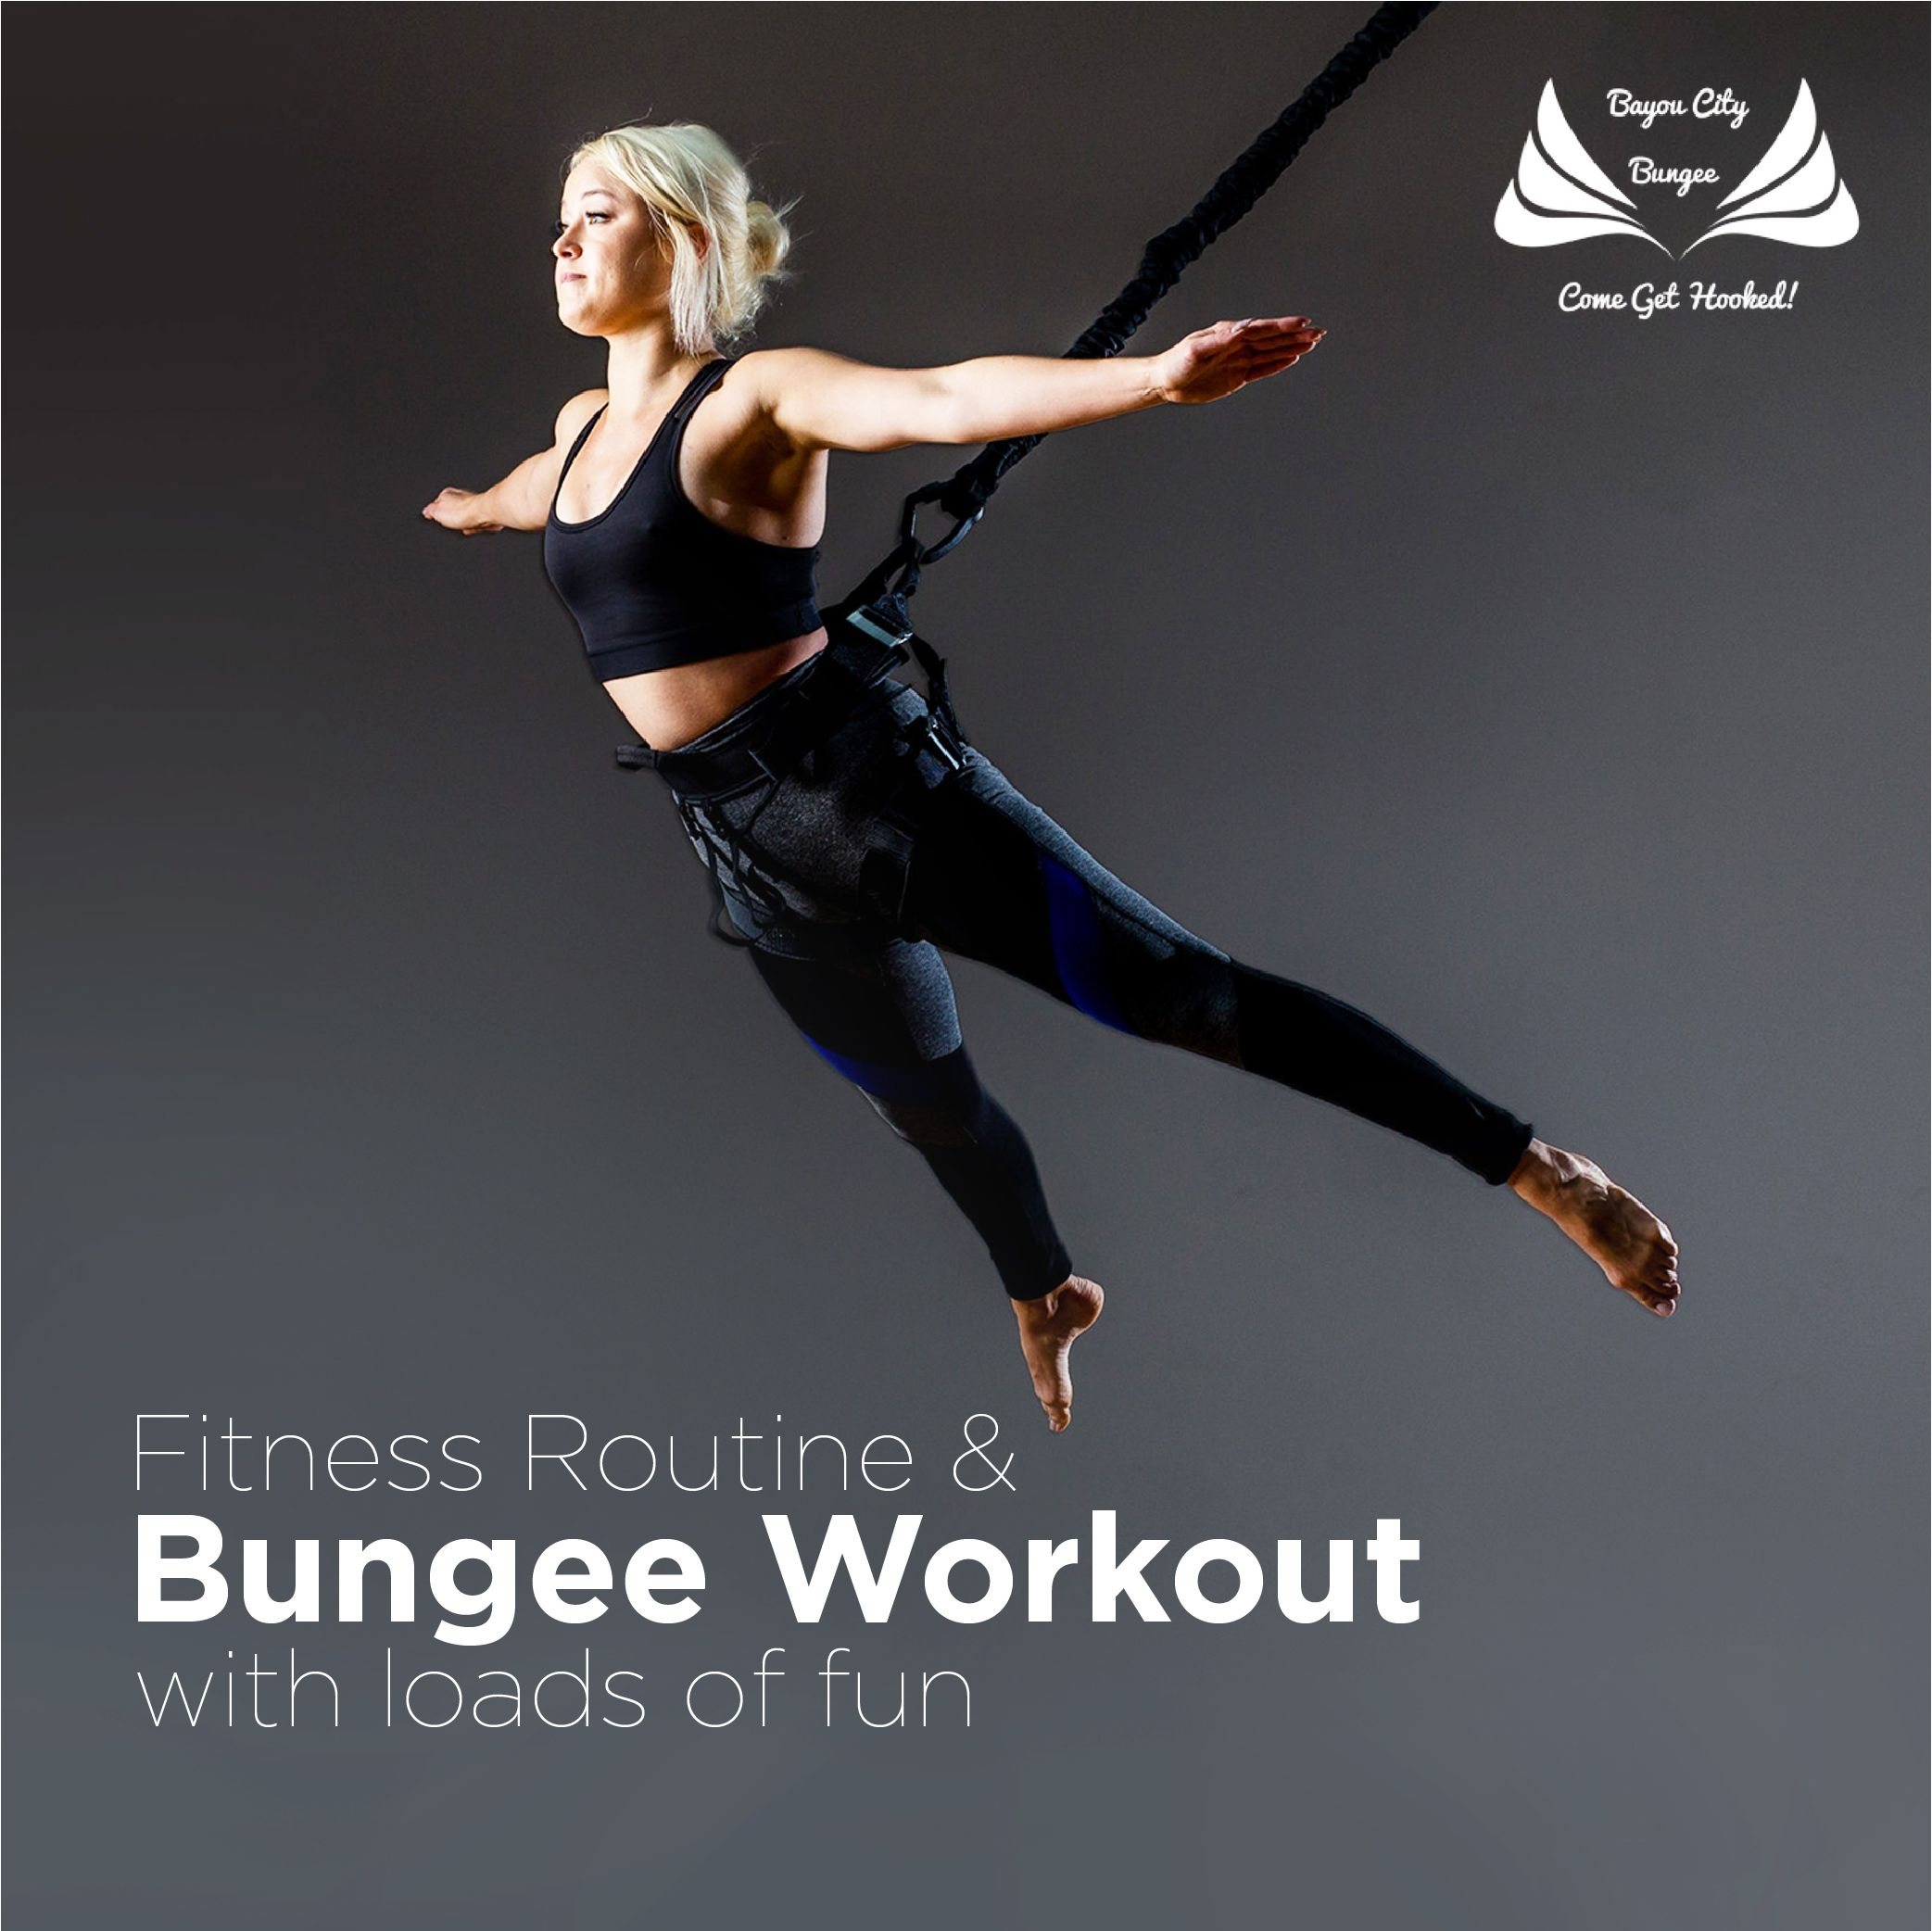 Fitness Routine Bungee Workout With Loads Of Fun Bungee Workout Workout Routine Fun Workouts